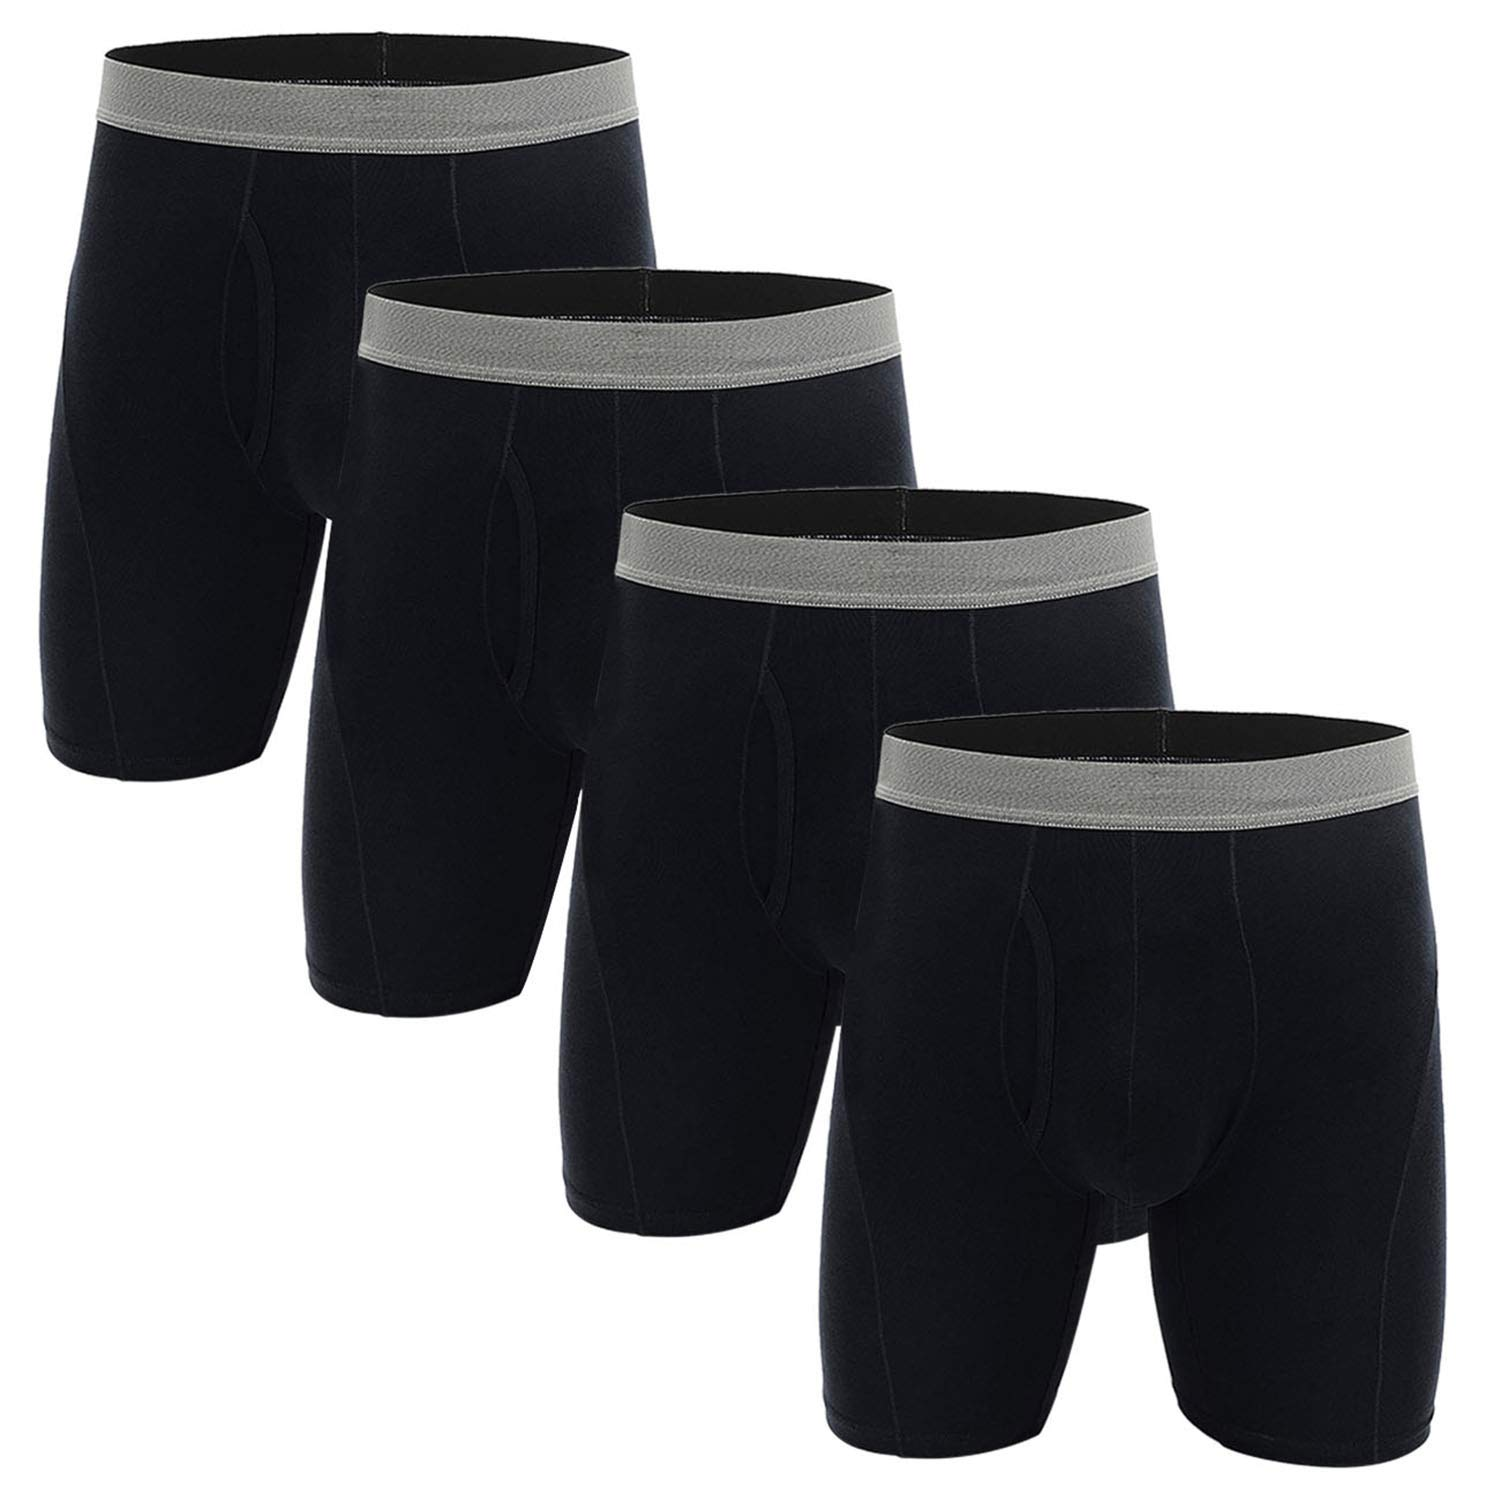 NEIKU Mens Underwear Boxer Briefs Pack 4Pack L